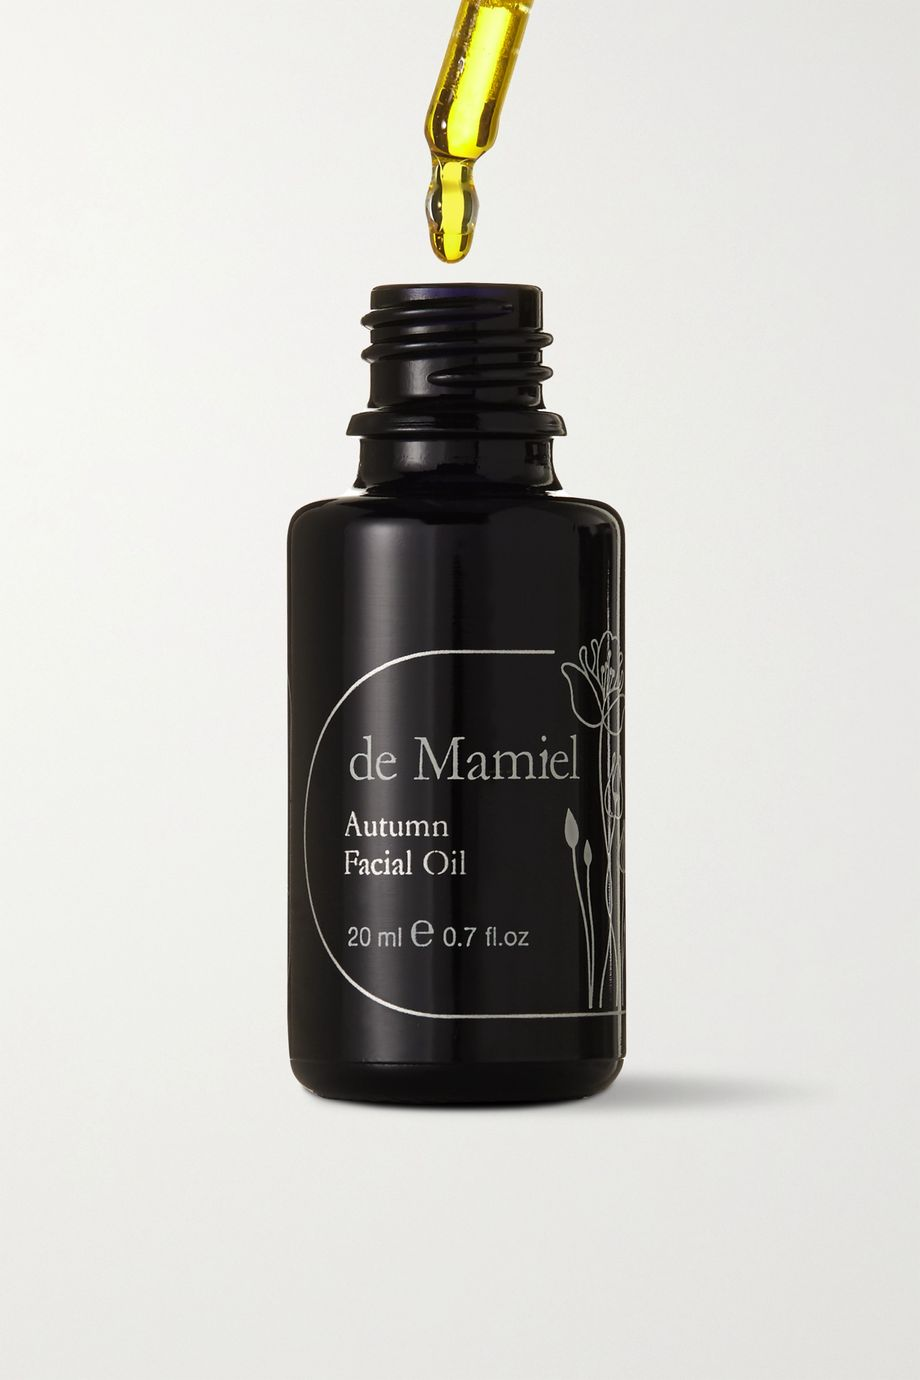 DE MAMIEL Autumn Facial Oil, 20ml